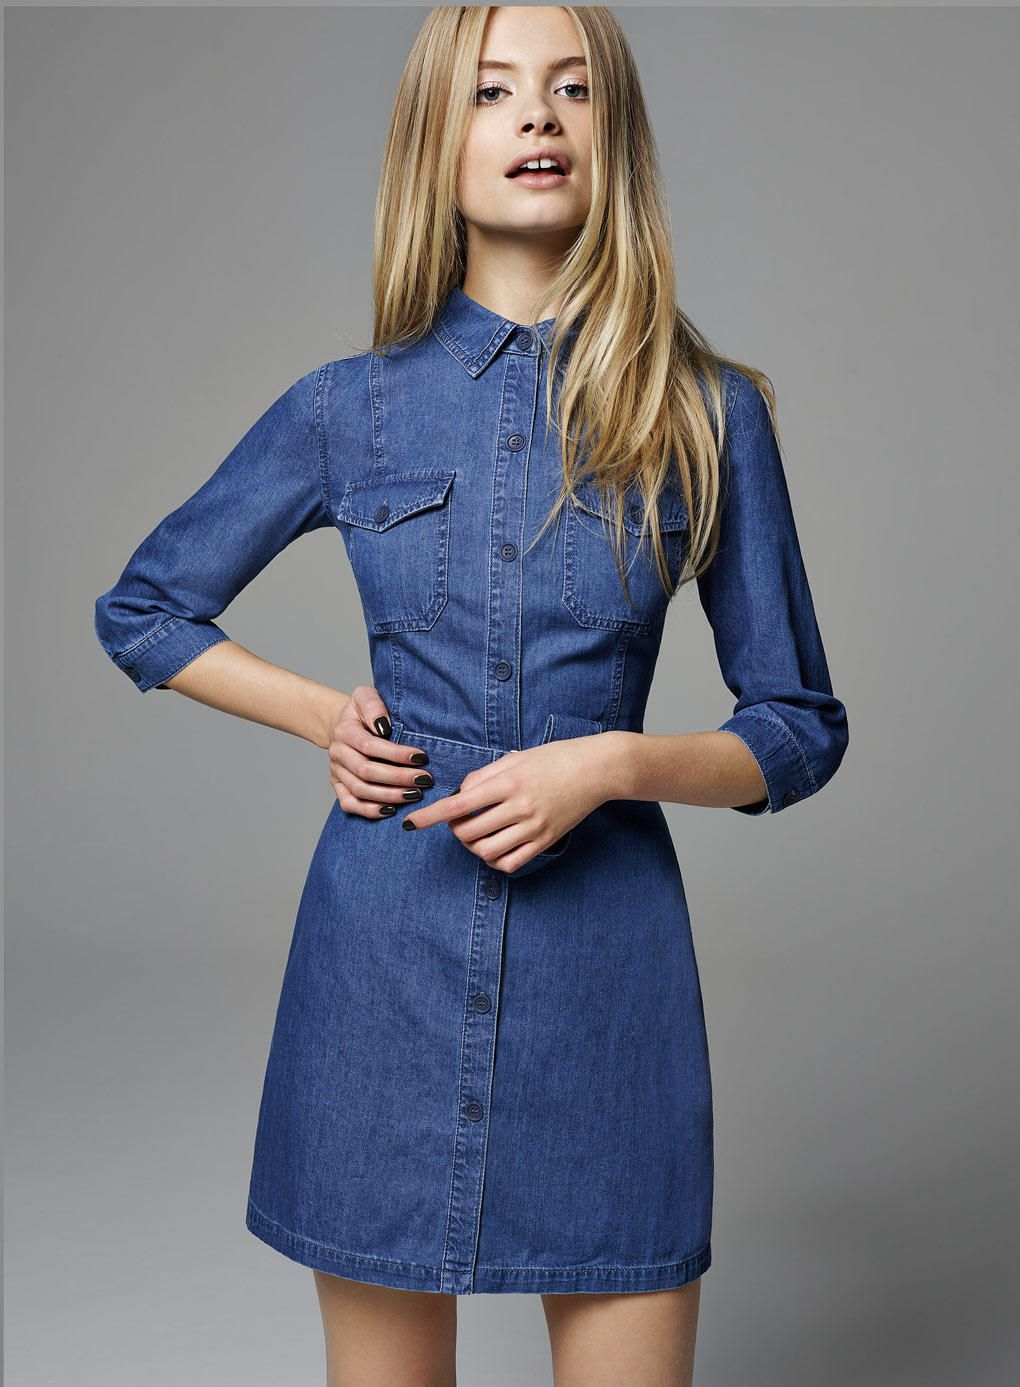 84a3a2953b Utility Denim Shirt Dress - Miss Selfridge from Miss Selfridge. Saved to  Things I want as gifts